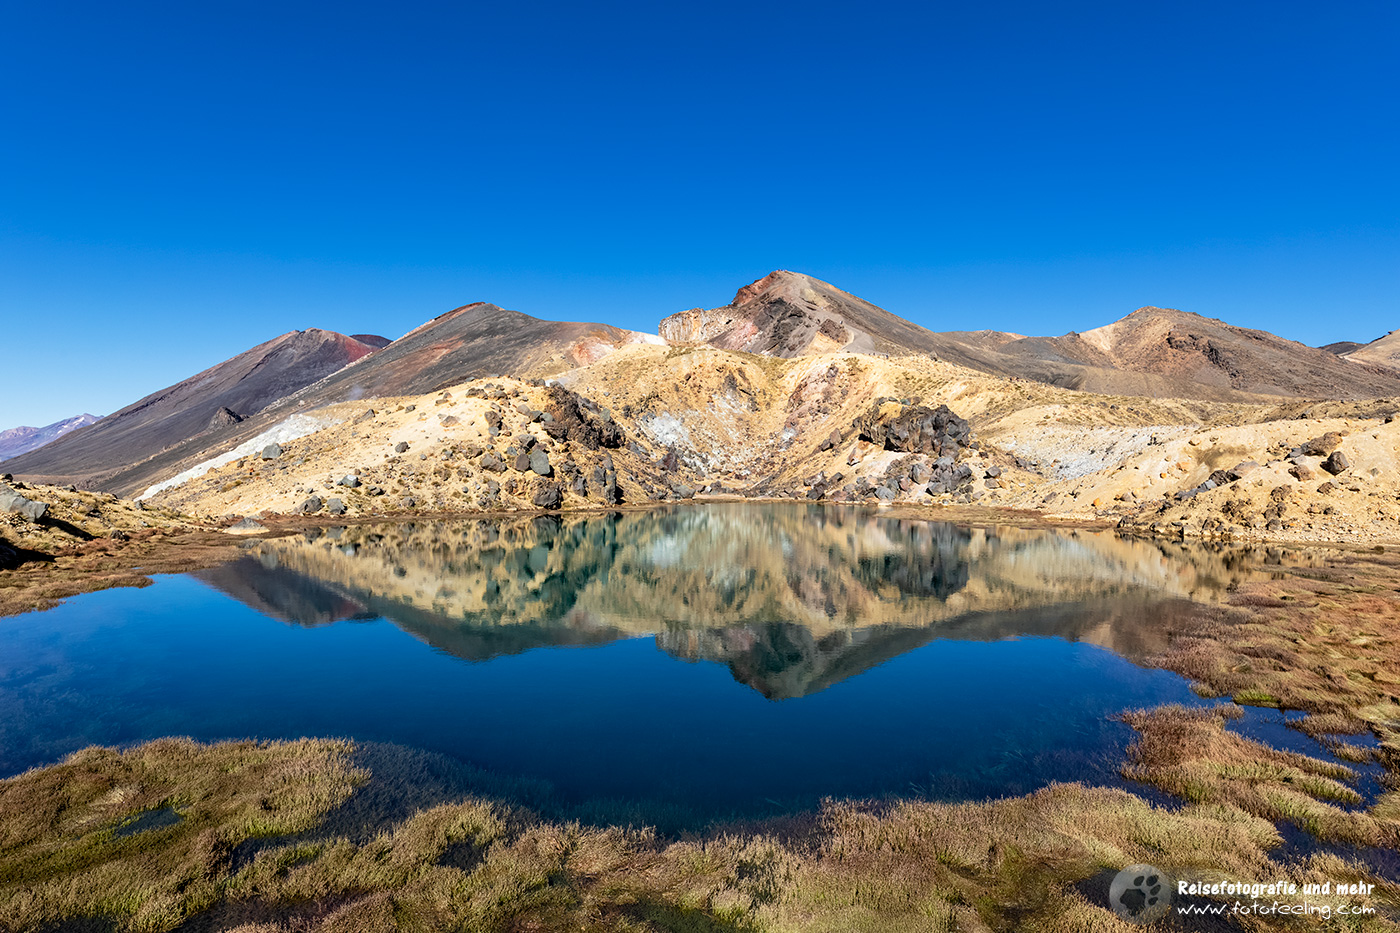 Tolle Spiegelung in den Emerald Lakes, Tongariro Crossing, Tongariro Nationalpark,  Nordinsel, Neuseeland